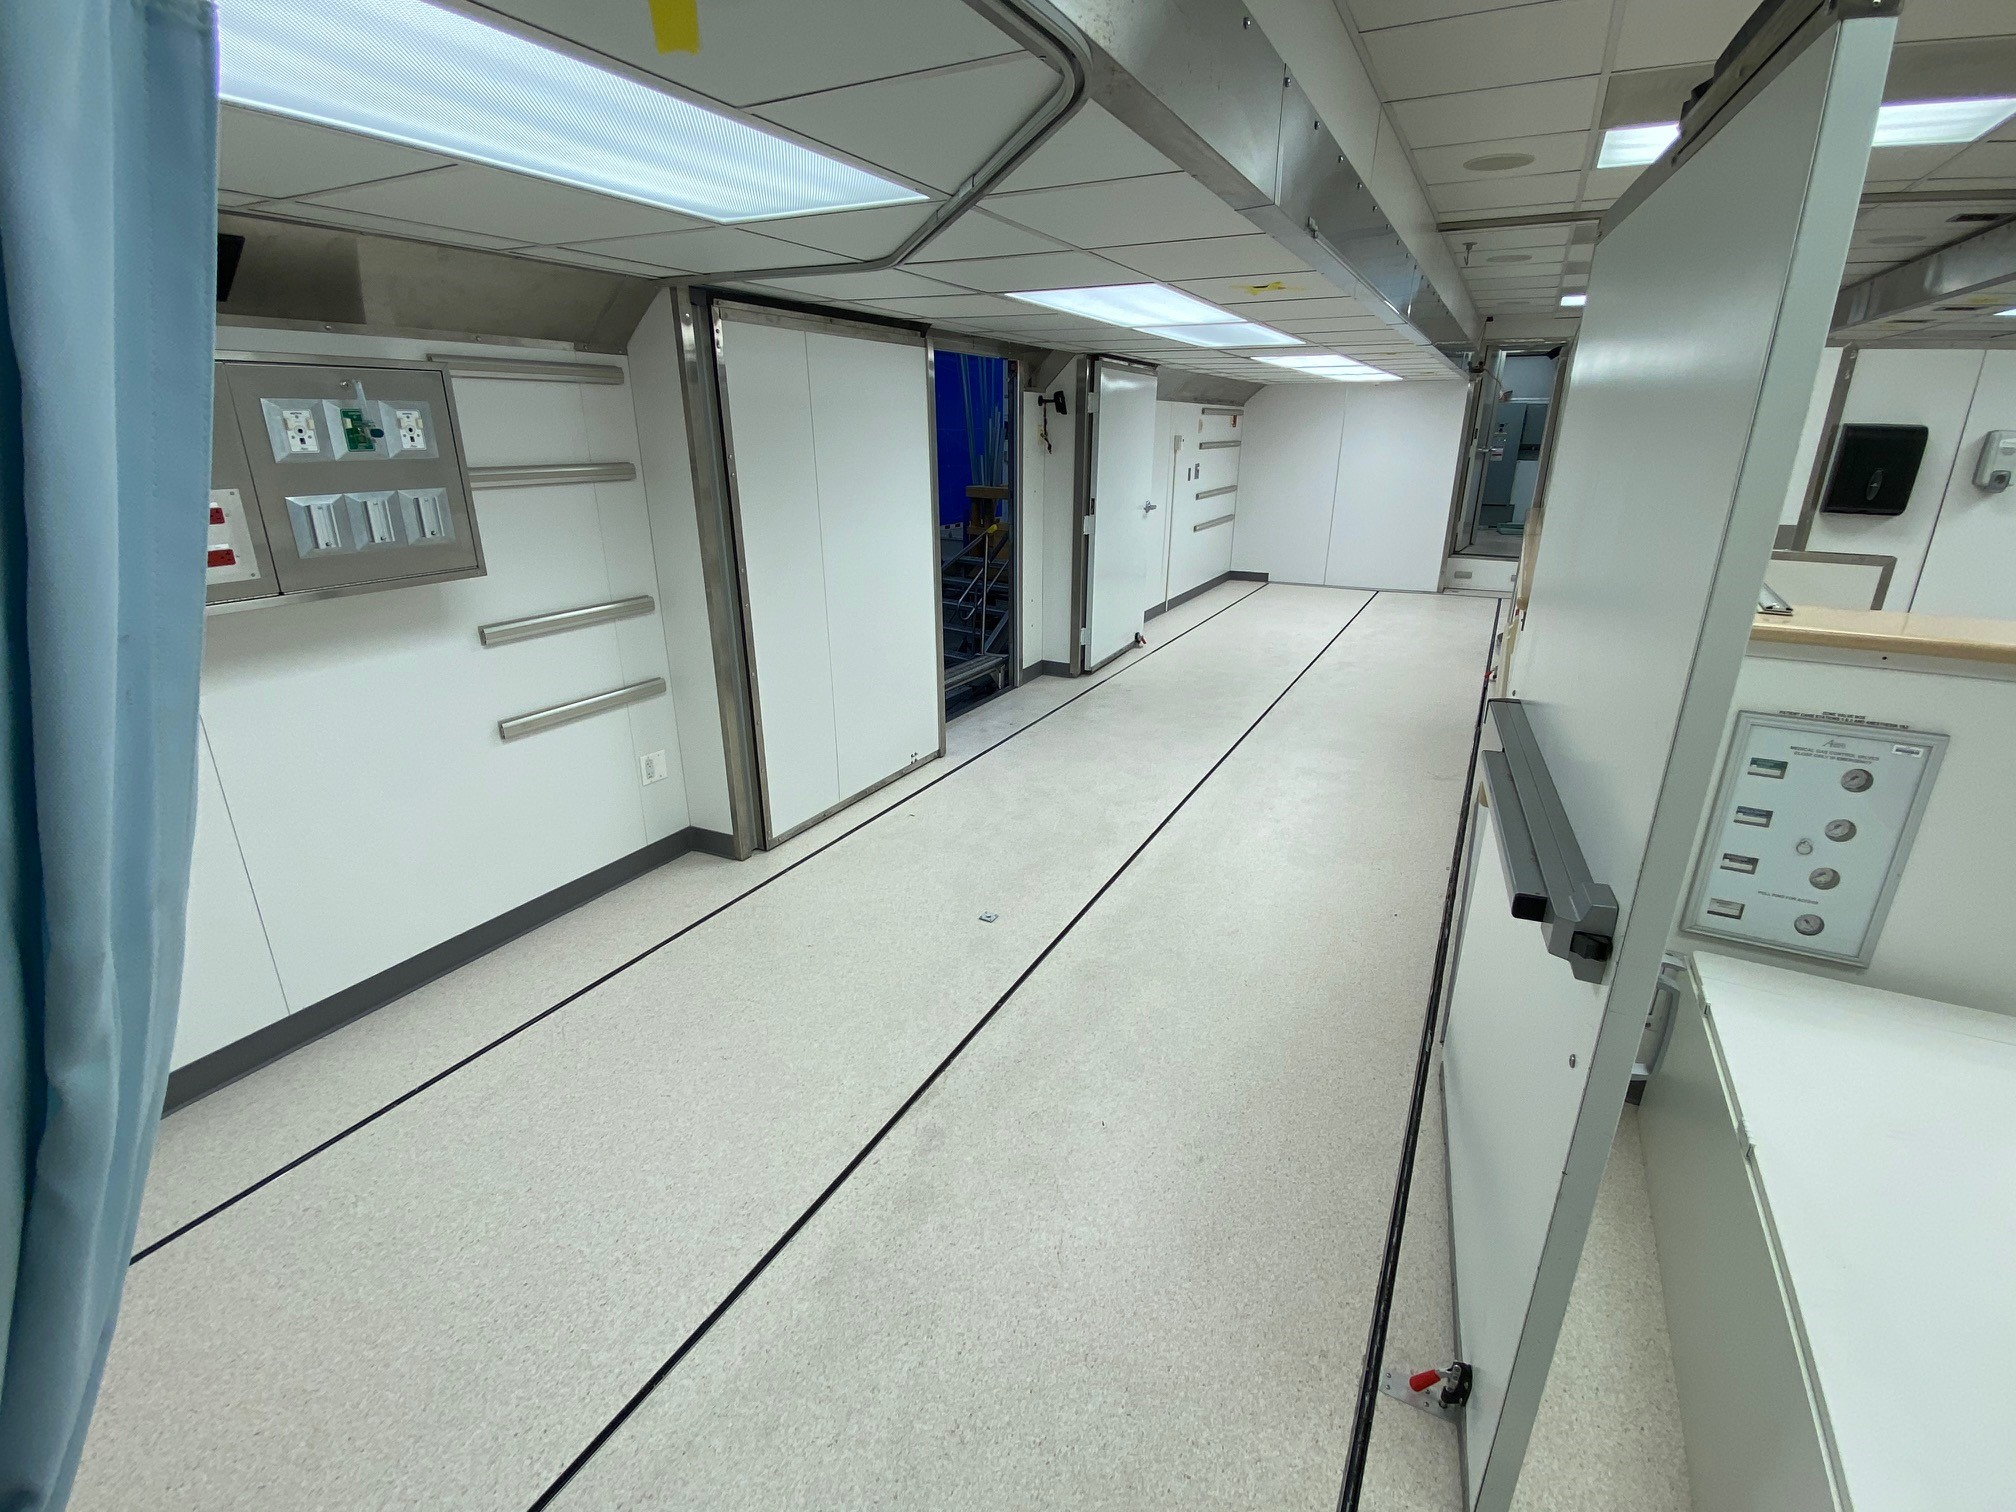 Mobile surgery unit recovery room